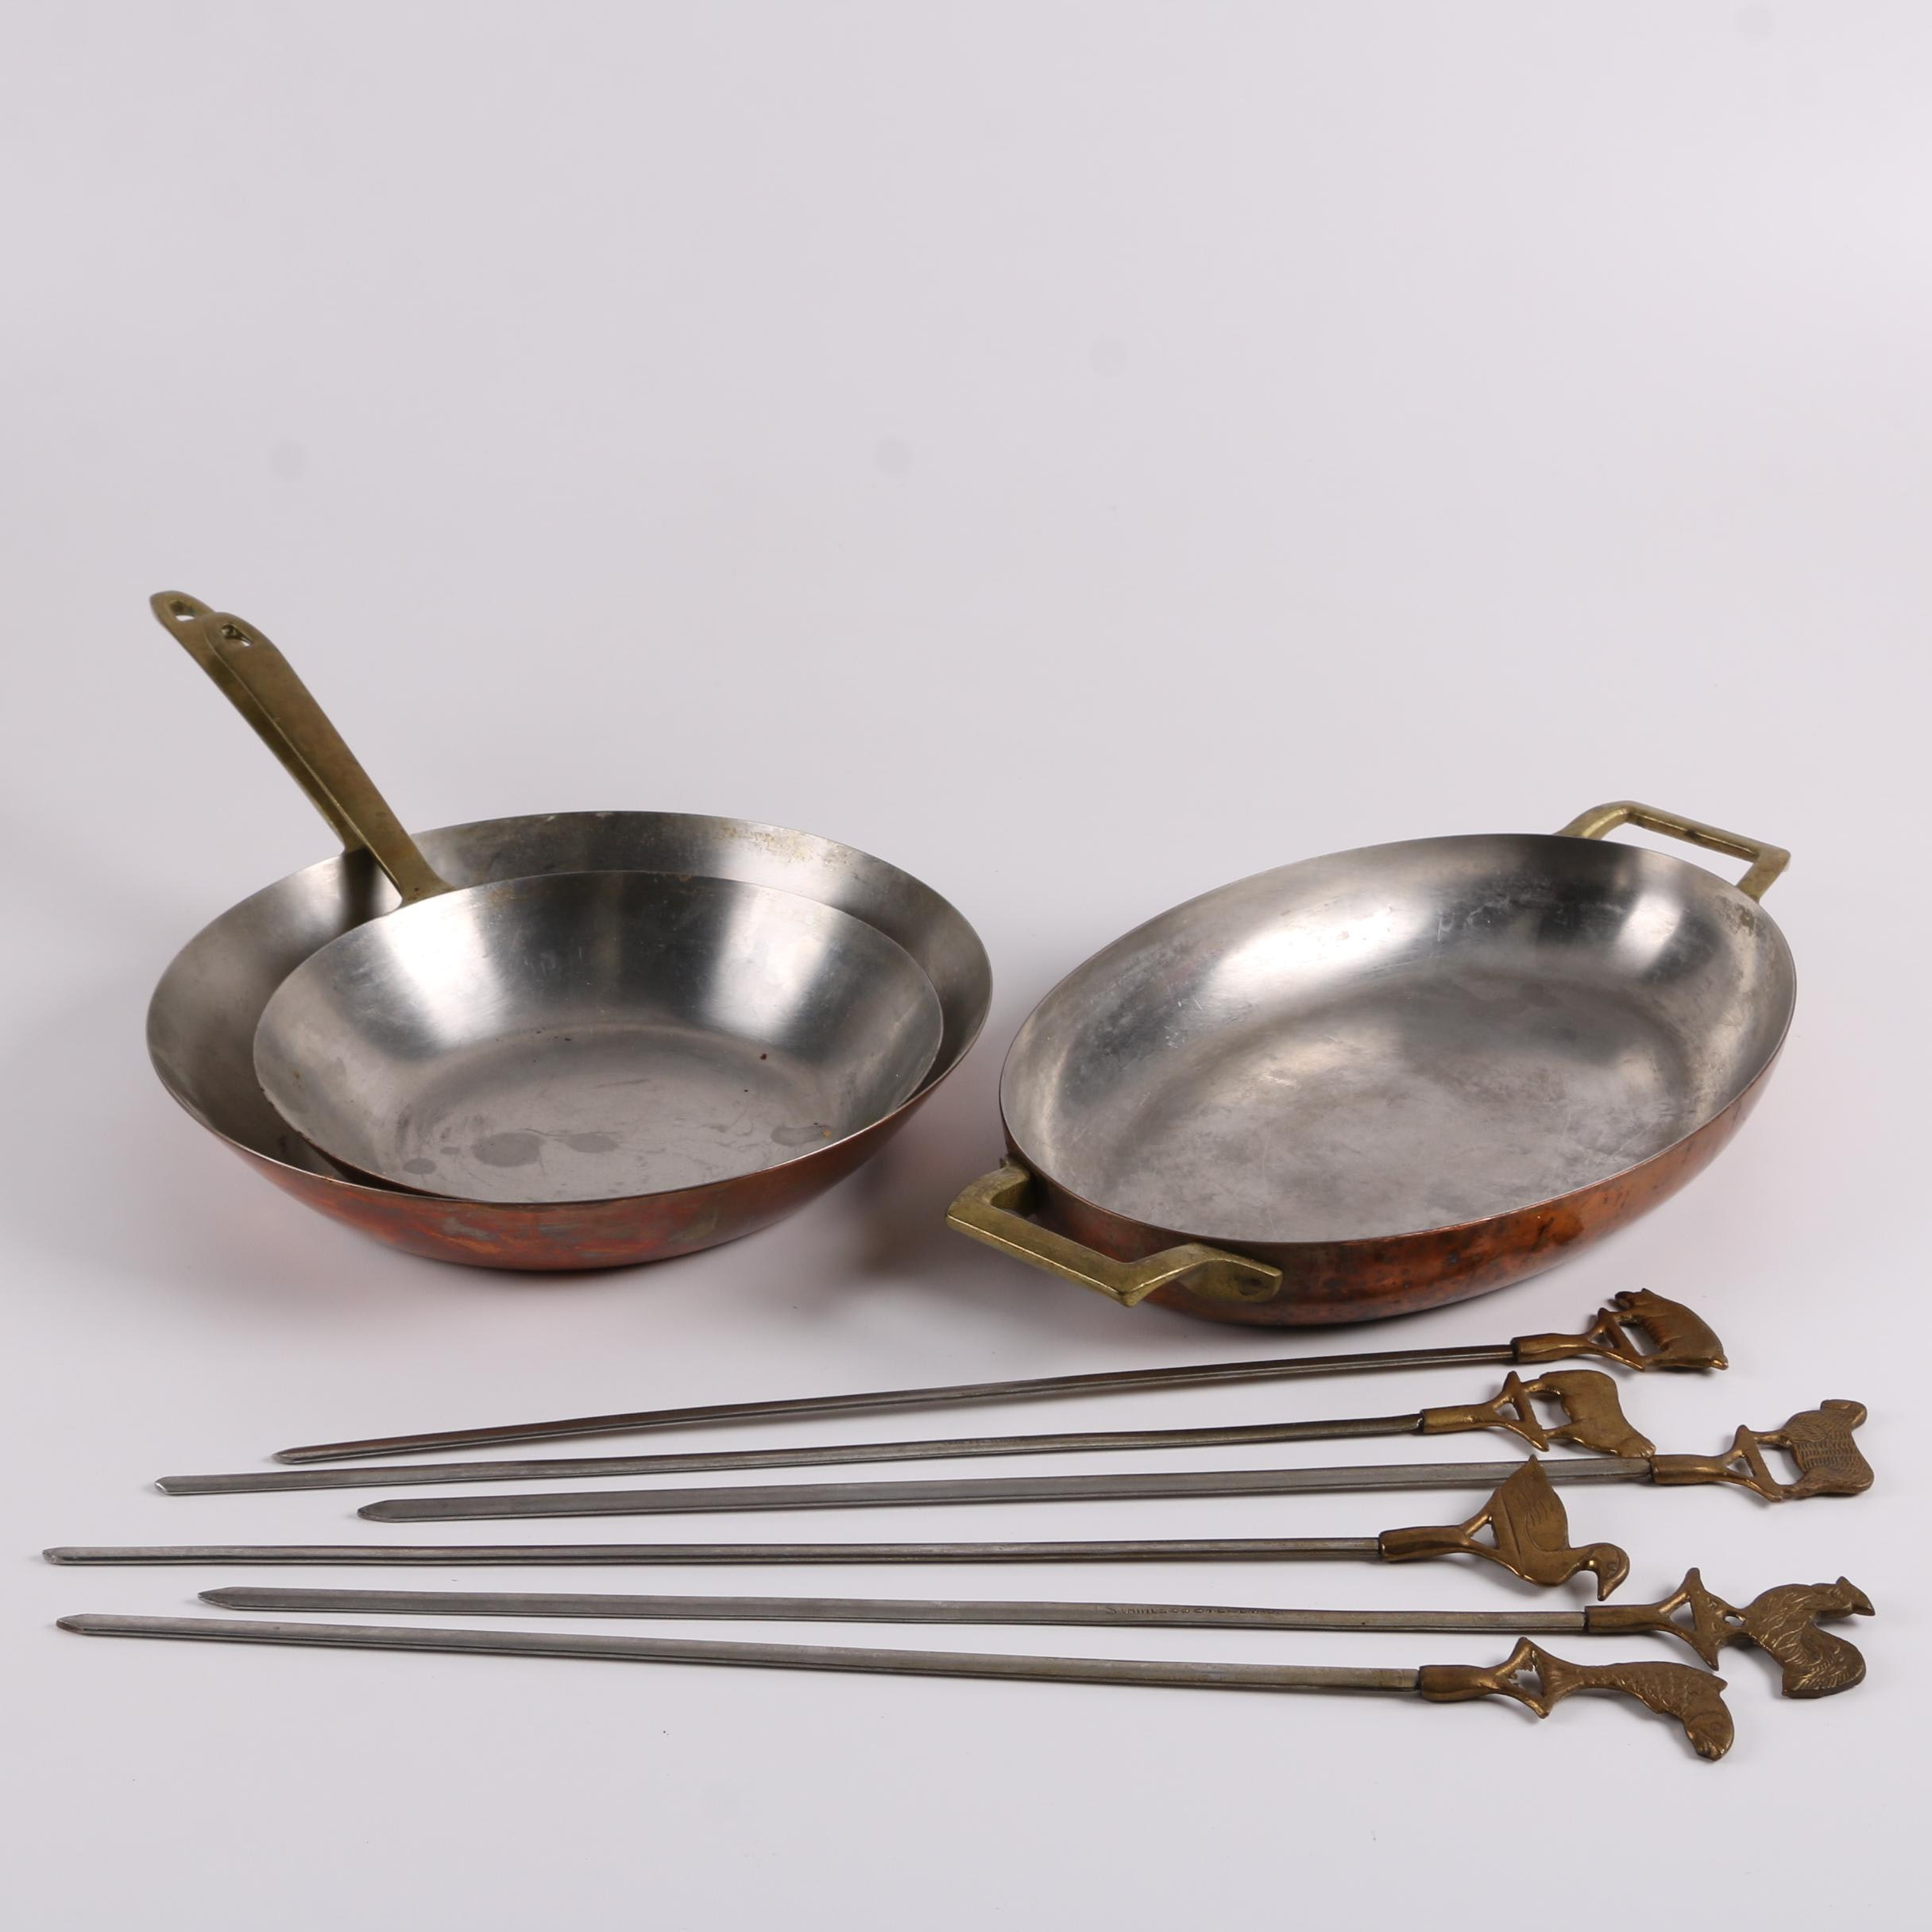 Vintage Copper Pans with Indian Stainless Steel Skewers